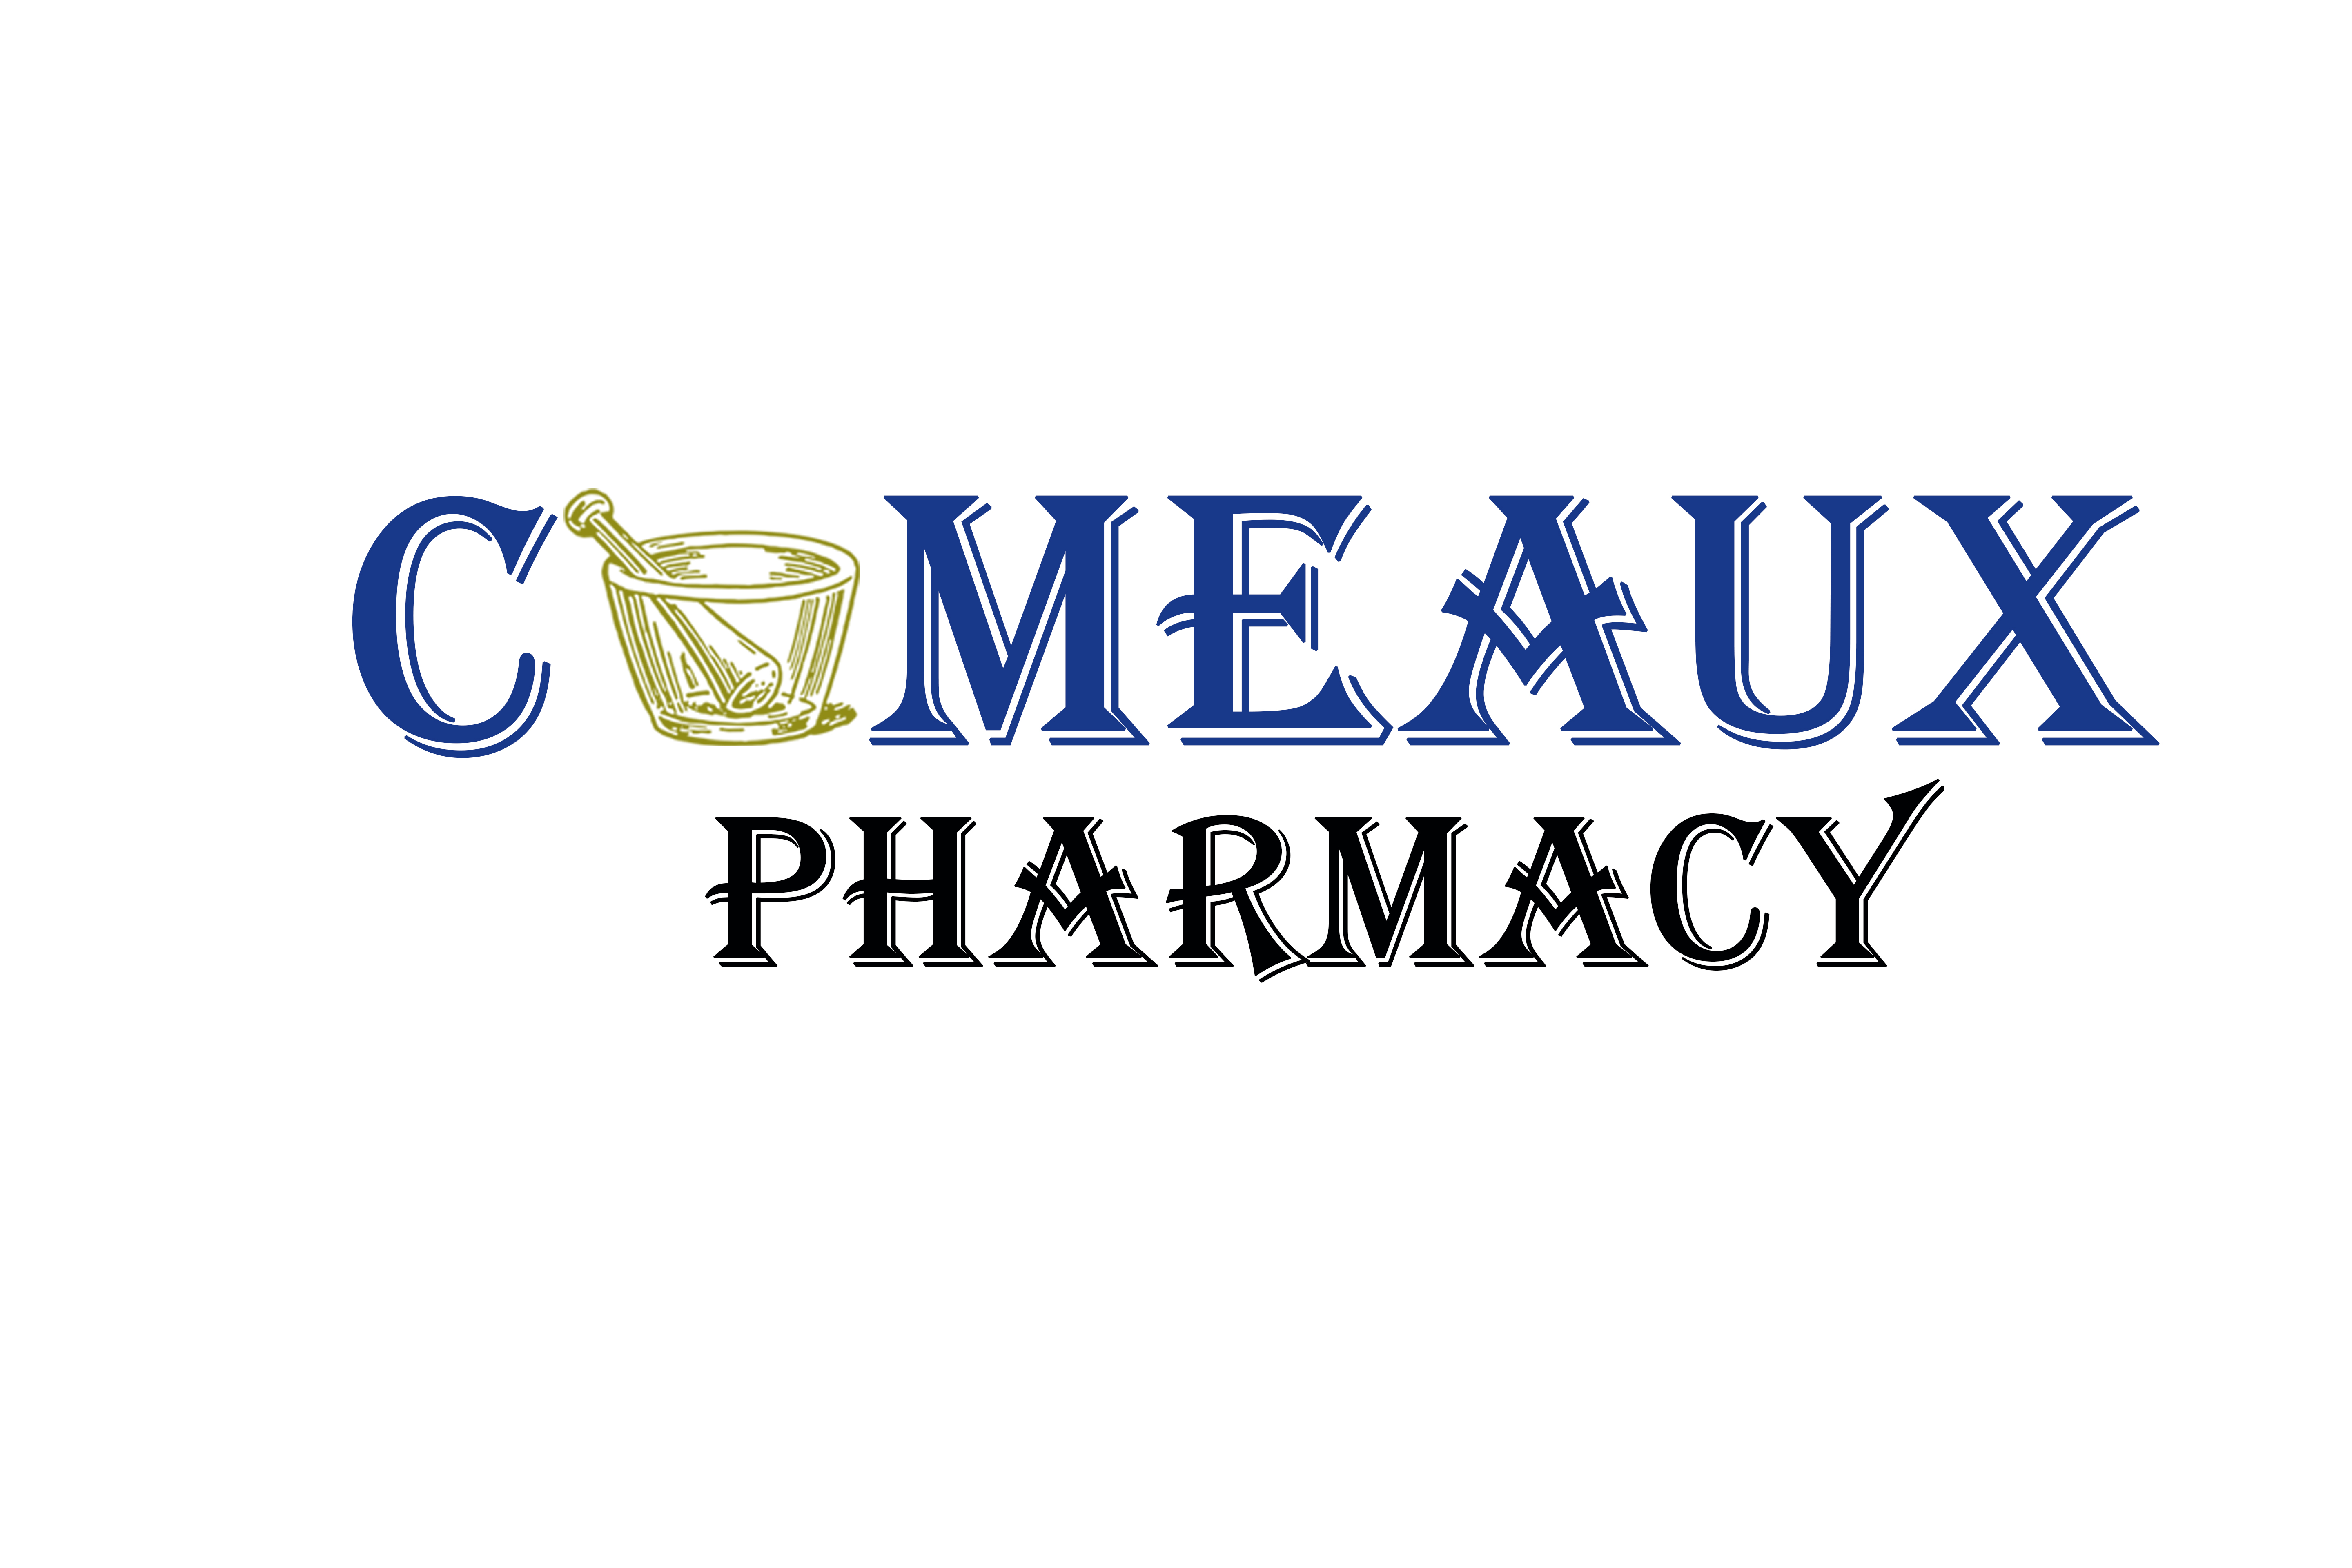 Comeaux Pharmacy